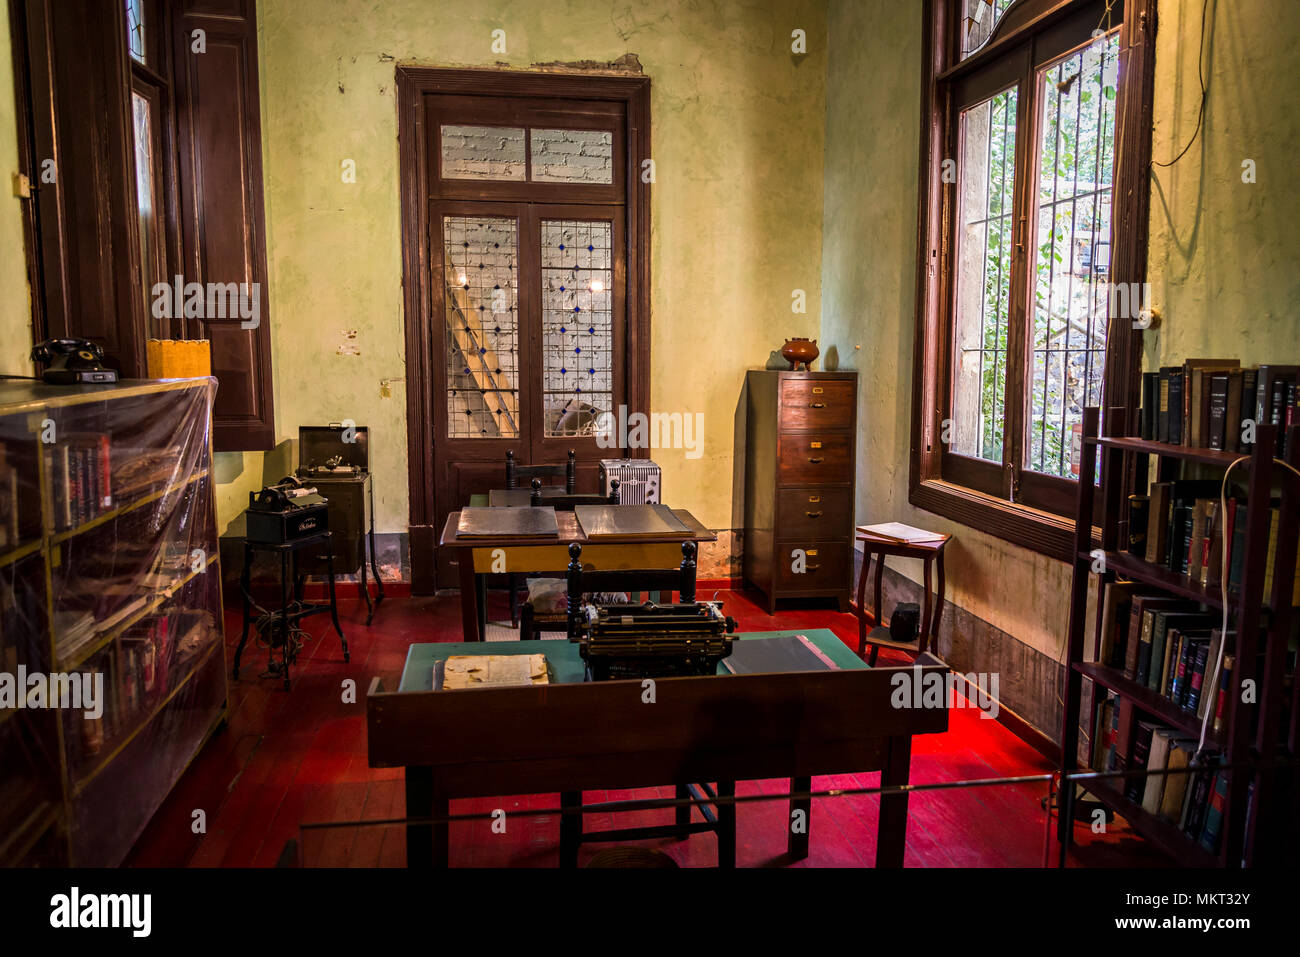 Office with desks and typewriters were Trotsky's secretaries and helpers worked, Leon Trotsky Museum, Coyoacan, Mexico City, Mexico - Stock Image